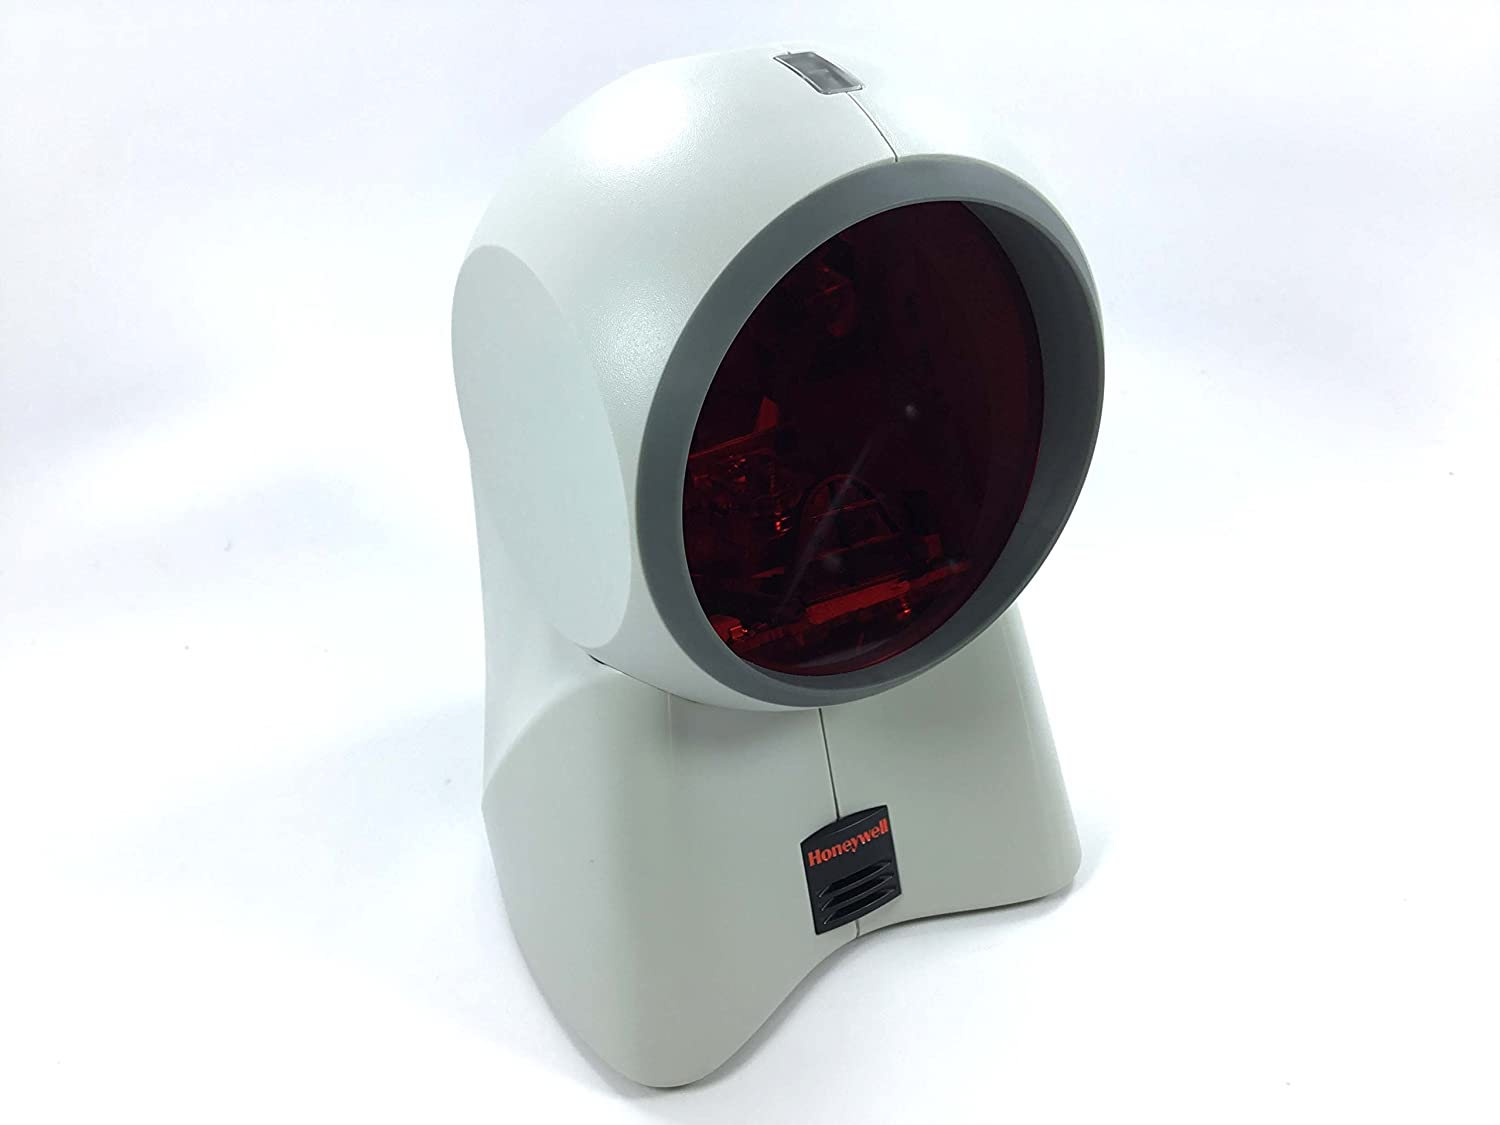 Honeywell Orbit MK7180-71A38 Omnidirectional Presentation Laser Scanner (Upgraded Model of MK7120), Including USB Cord and Mounting Plate Kit (White)